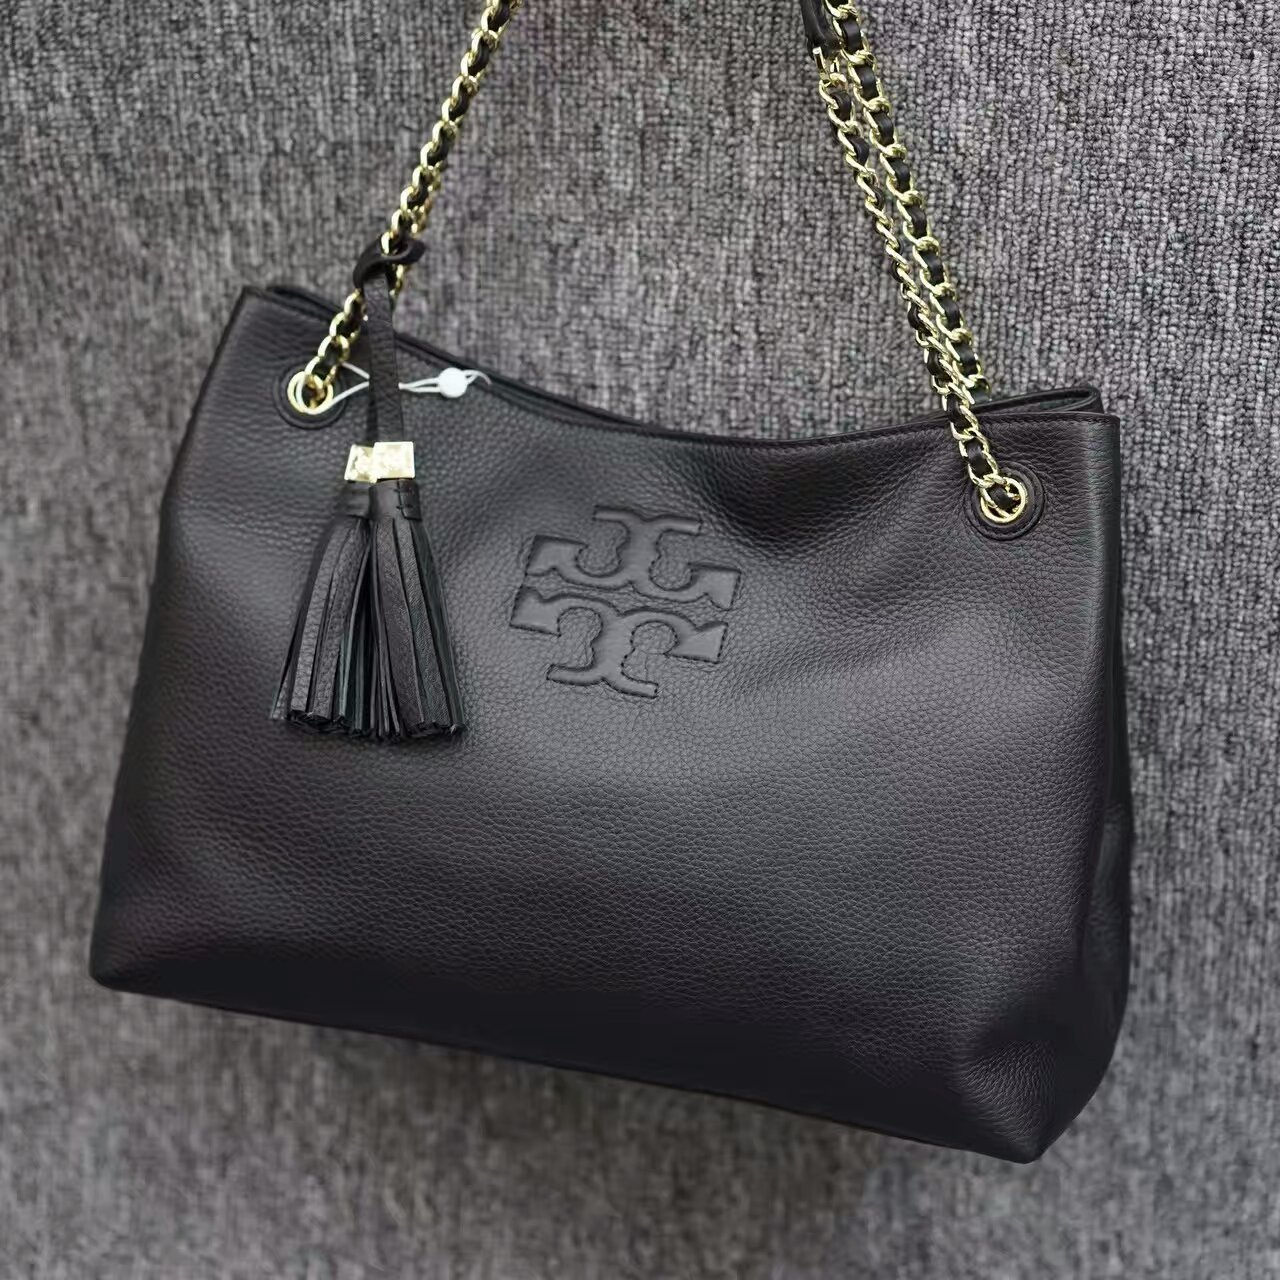 ff369c8214c Mmexport1481894115994. Mmexport1481894115994. Previous. Tory Burch Thea  Chain Shoulder Slouchy Tote